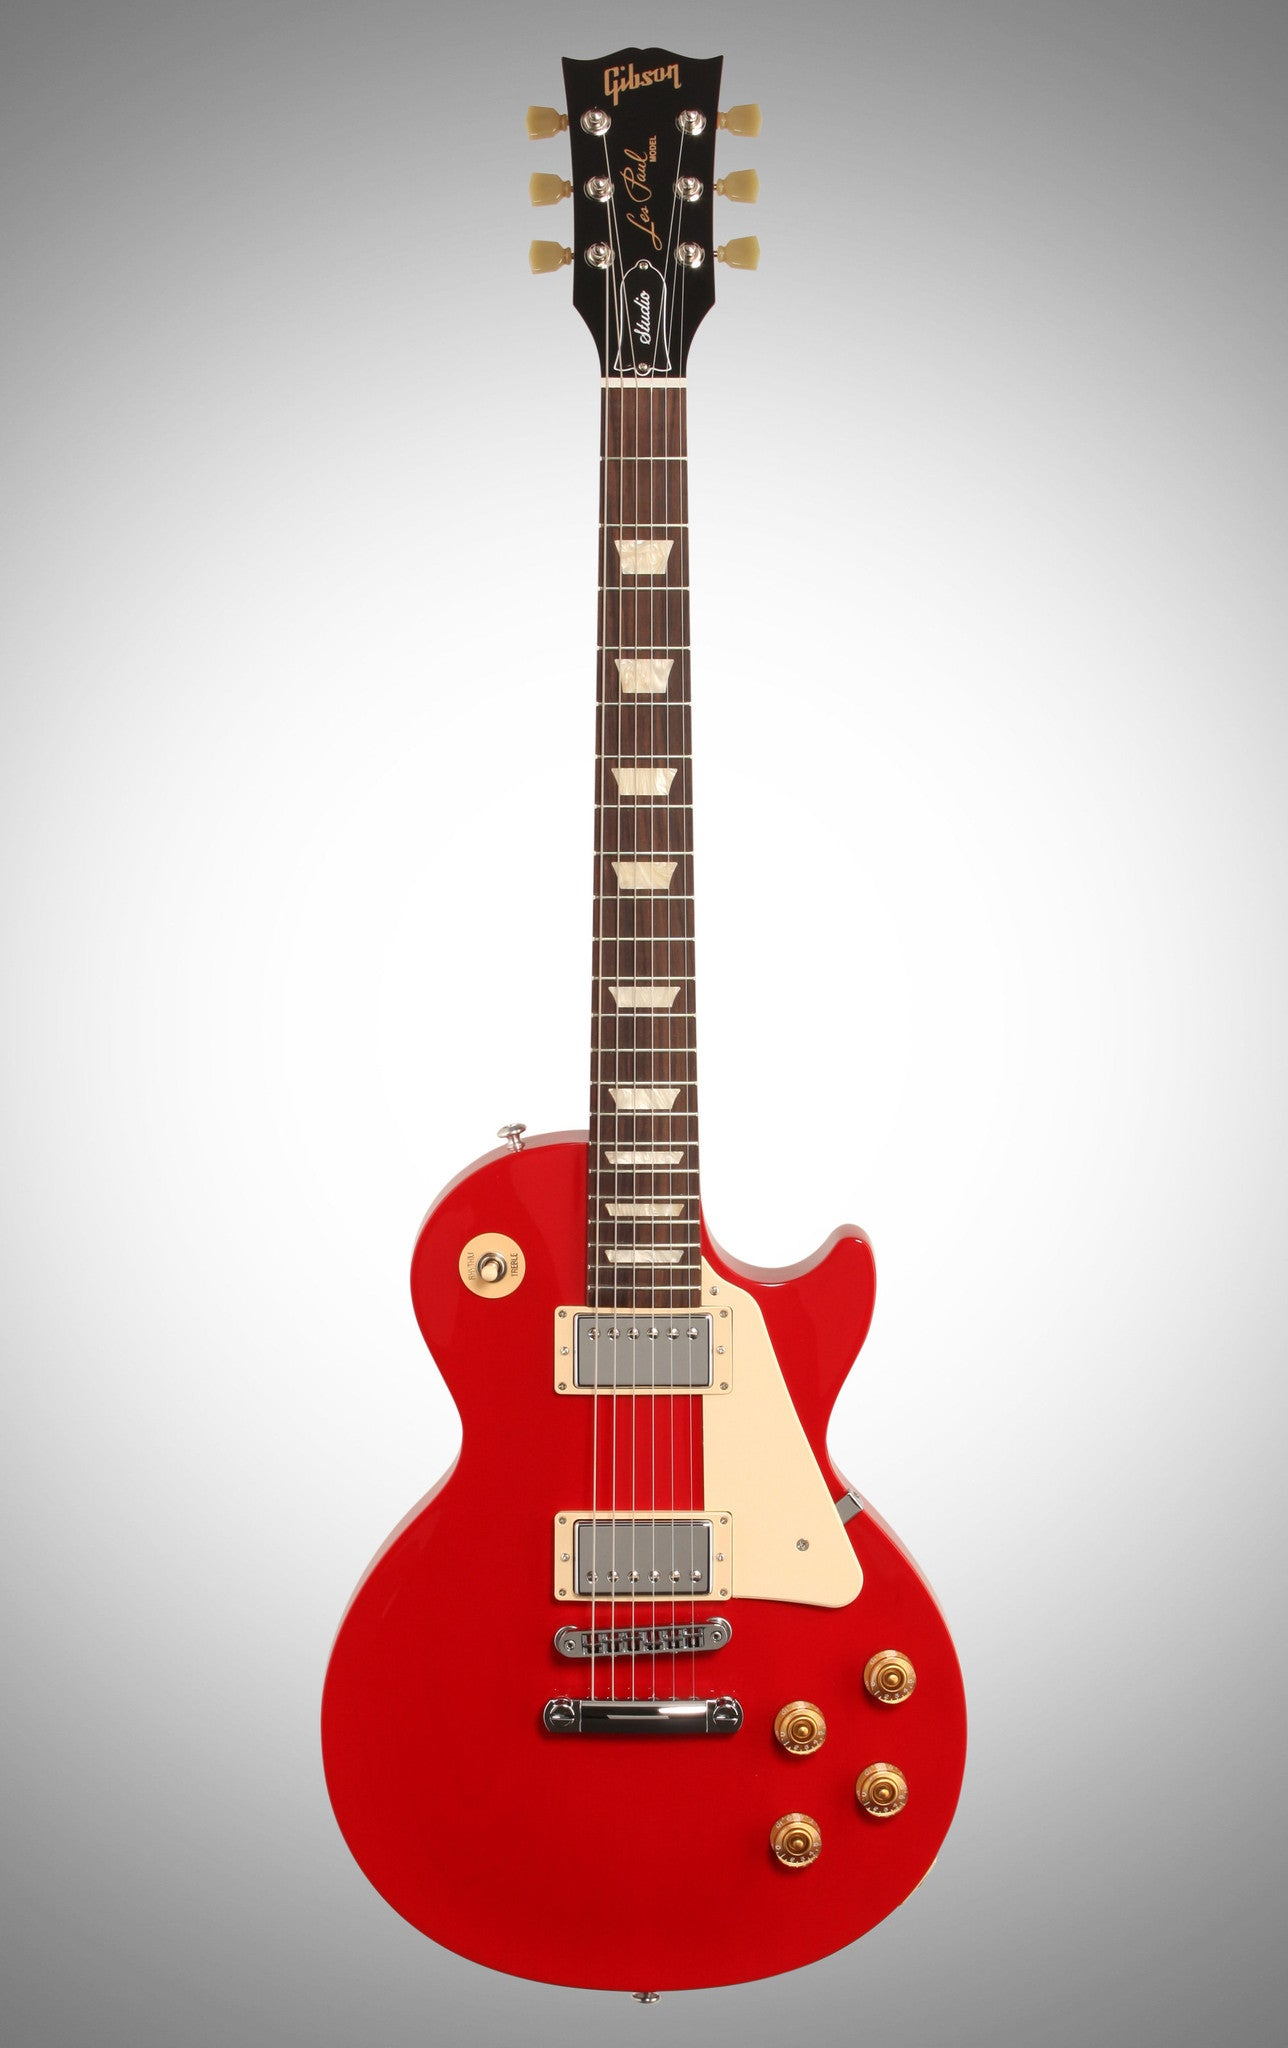 Gibson 2016 Les Paul Studio T Electric Guitar (with Case), Red Rocker - HIENDGUITAR   Gibson gibson2016